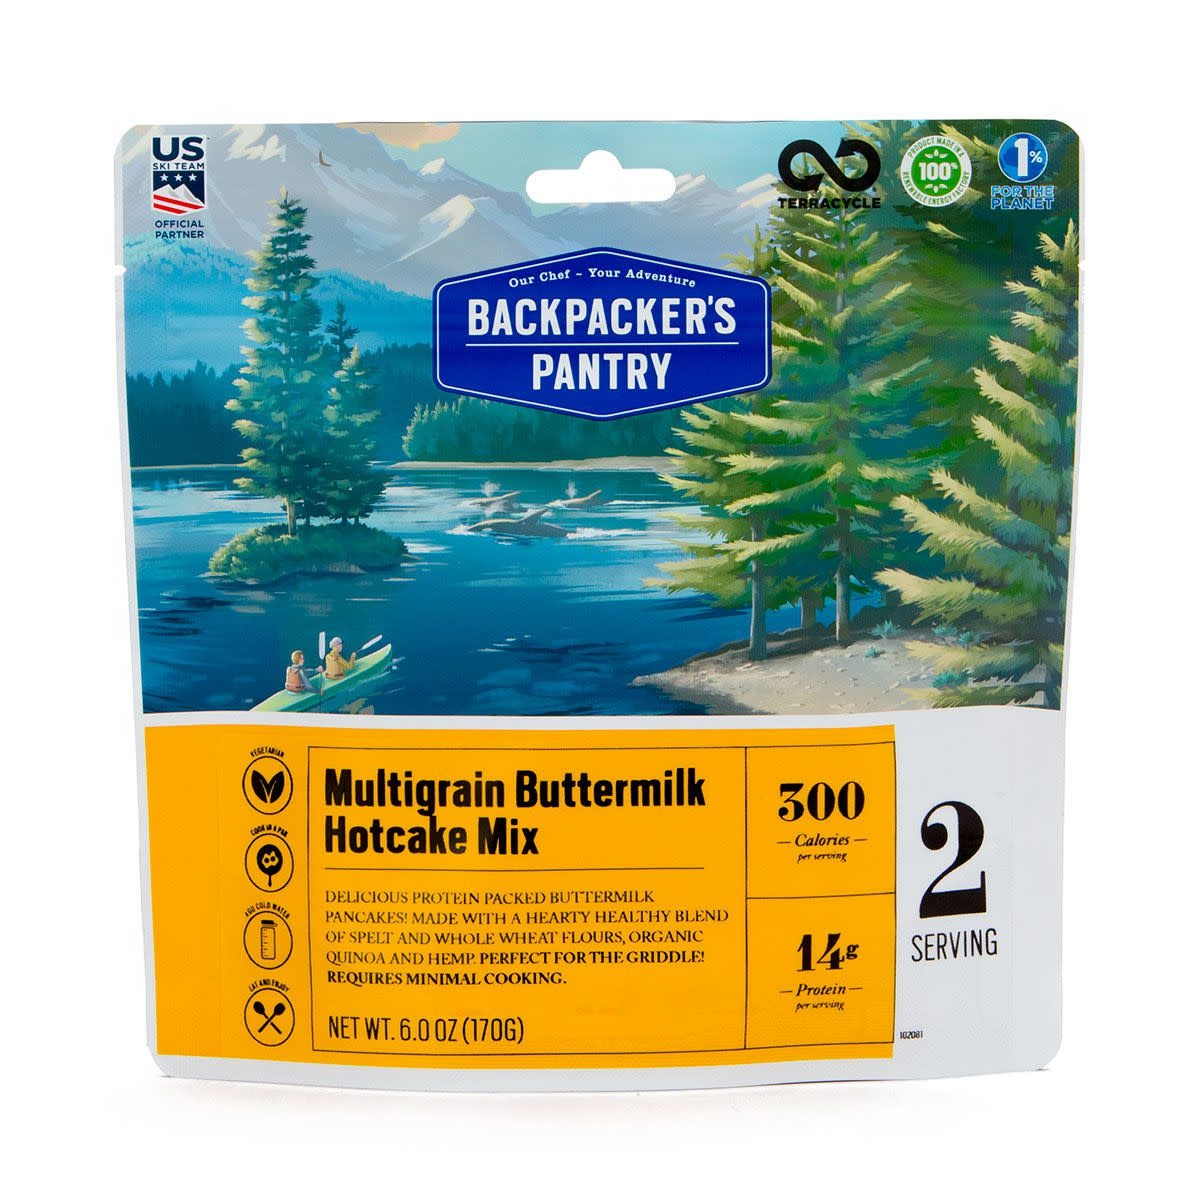 BACKPACKERS PANTRY Backpackers Pantry Multigrain Buttermilk Hotcake Mix